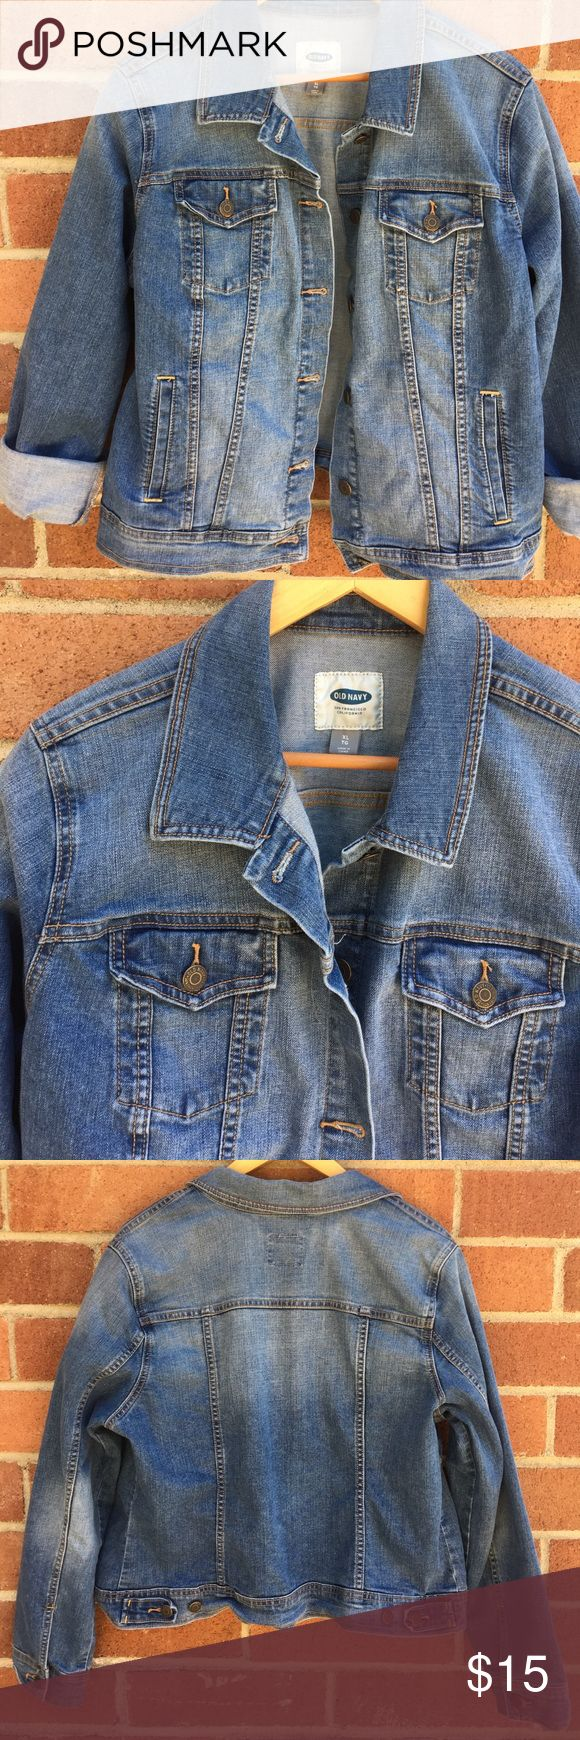 Old Navy Jean Jacket Old Navy Jean Jacket, size XL, EUC. This great jacket could be worn snug on XL, or large on a S-M. Photographed, I have the sleeves rolled up for a cool summer look, can be worn unrolled. Old Navy Jackets & Coats Jean Jackets